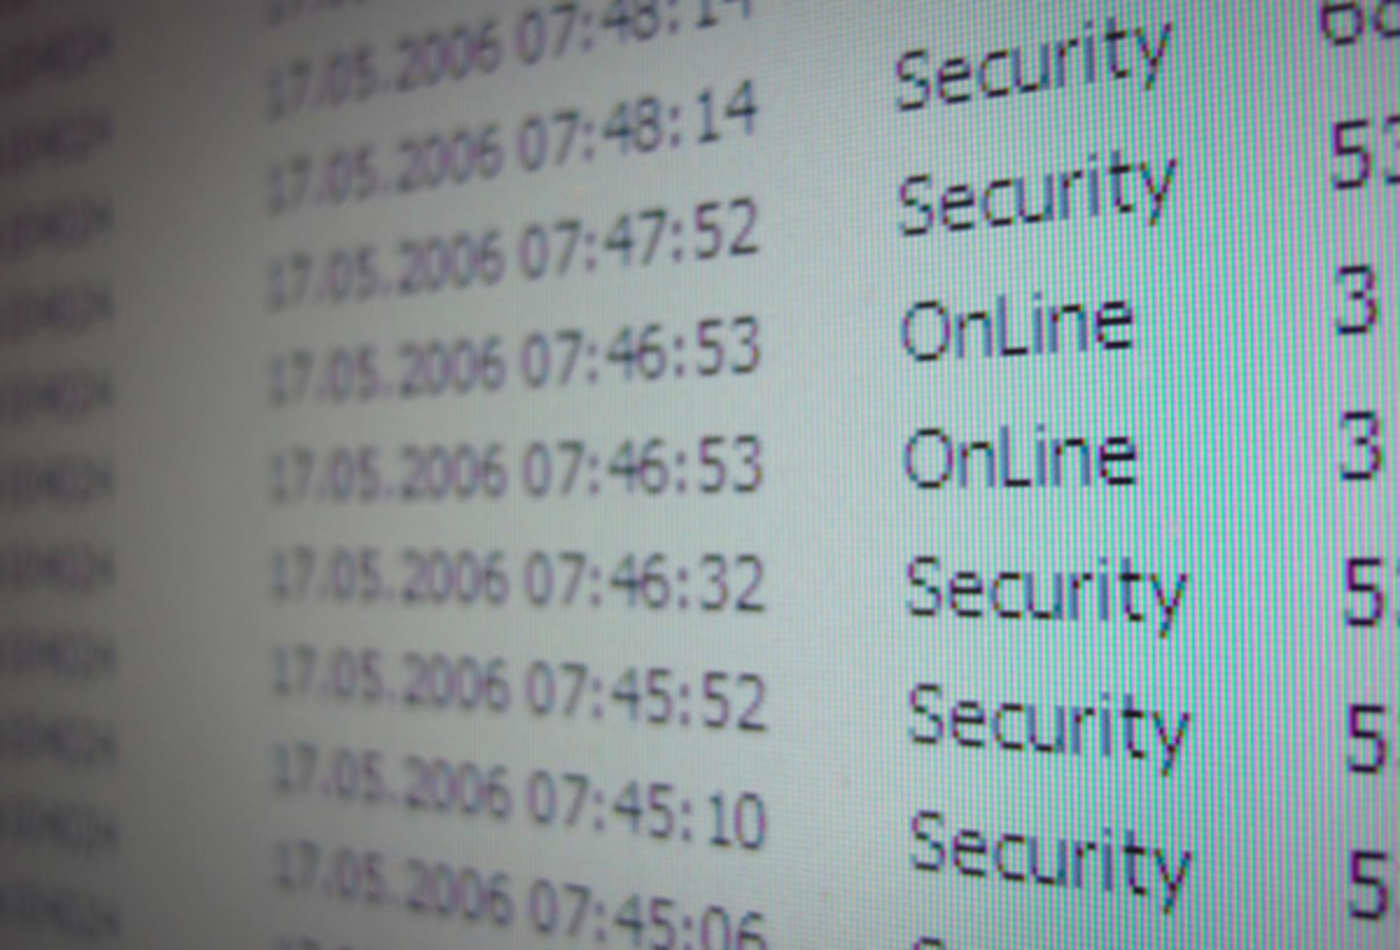 10-Most-Hackers-Computer-Systems-database.jpg